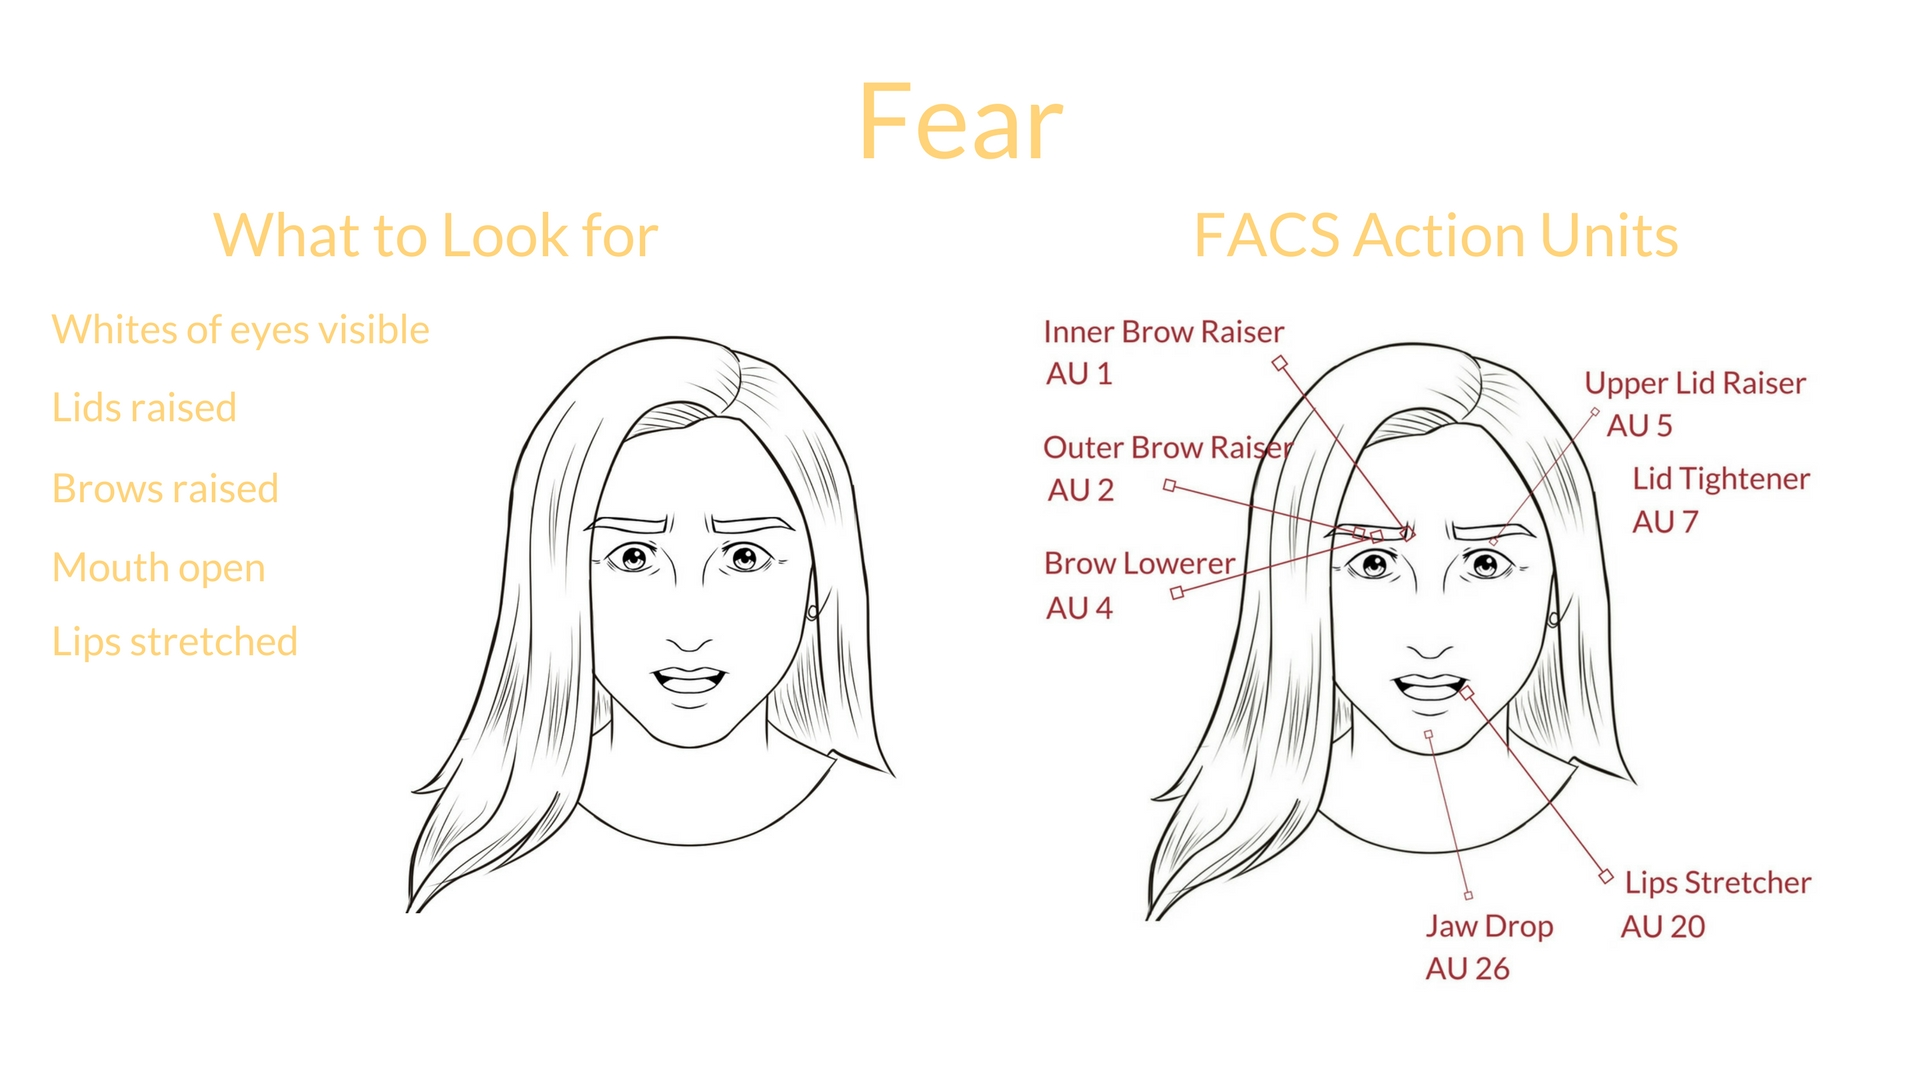 Universal Expression Fear